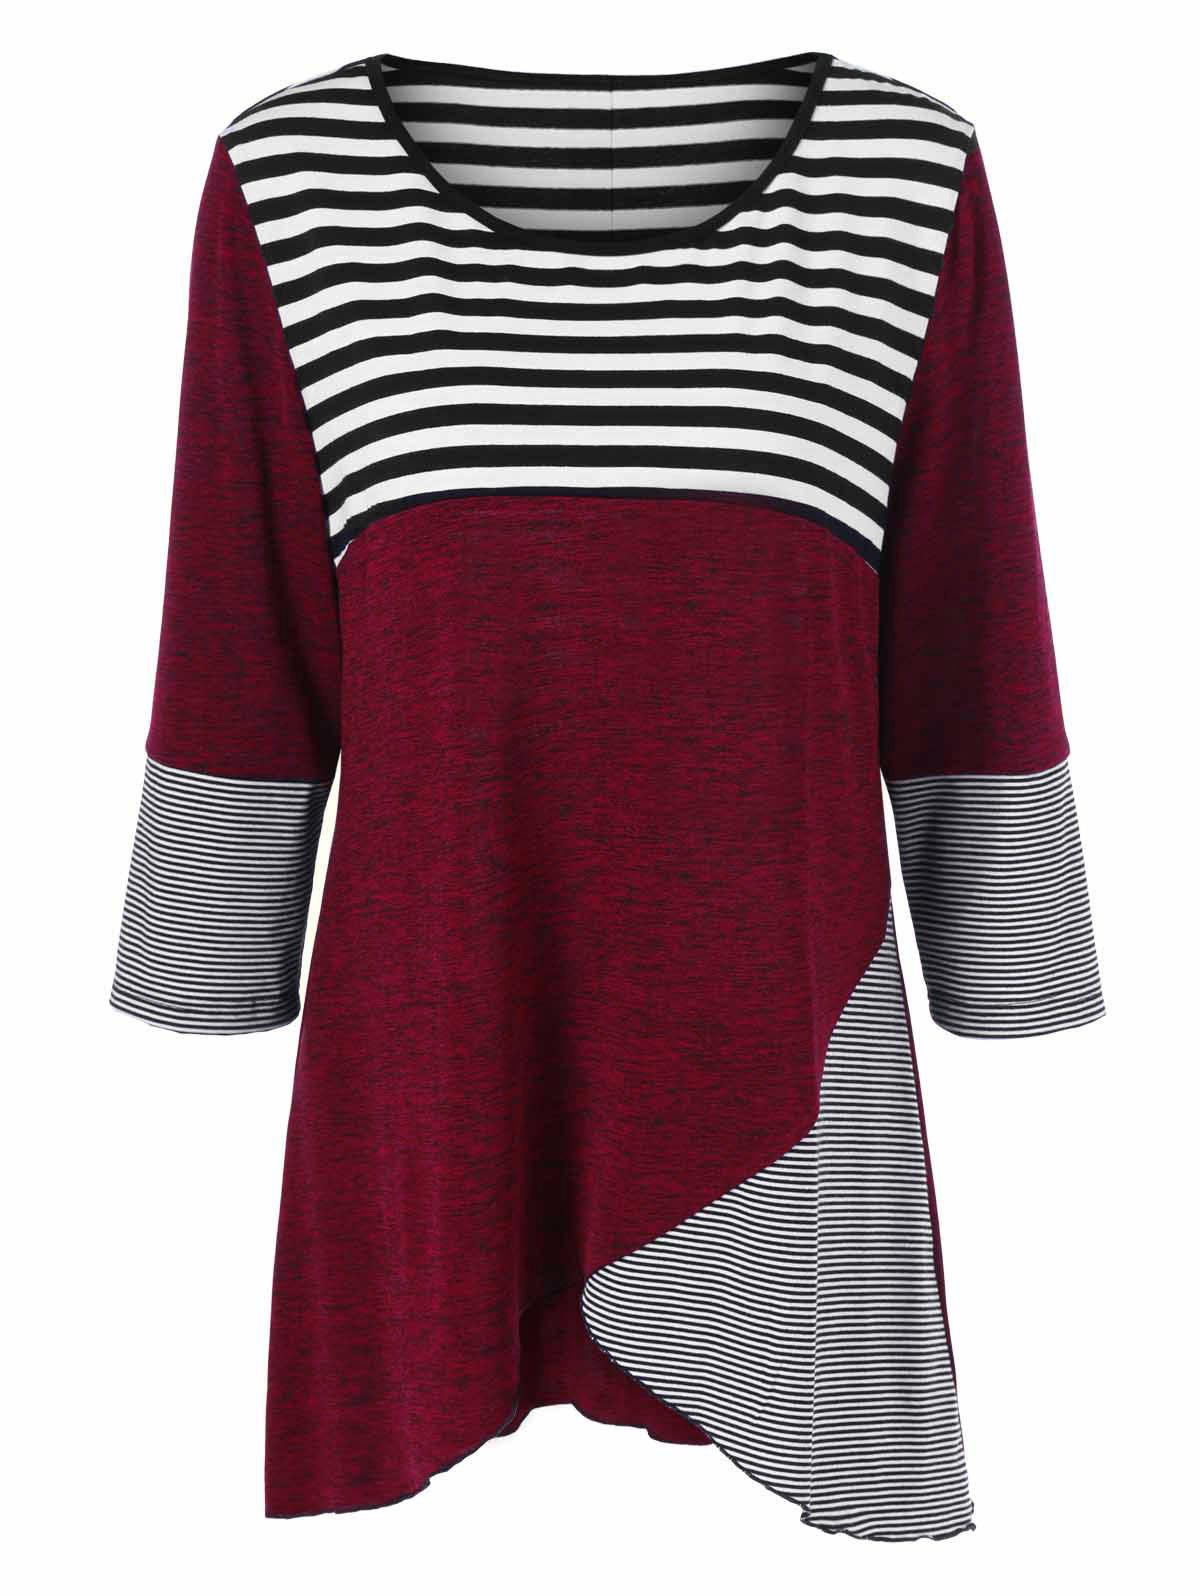 Plus Size Striped Tunic T-Shirt - STRIPE XL